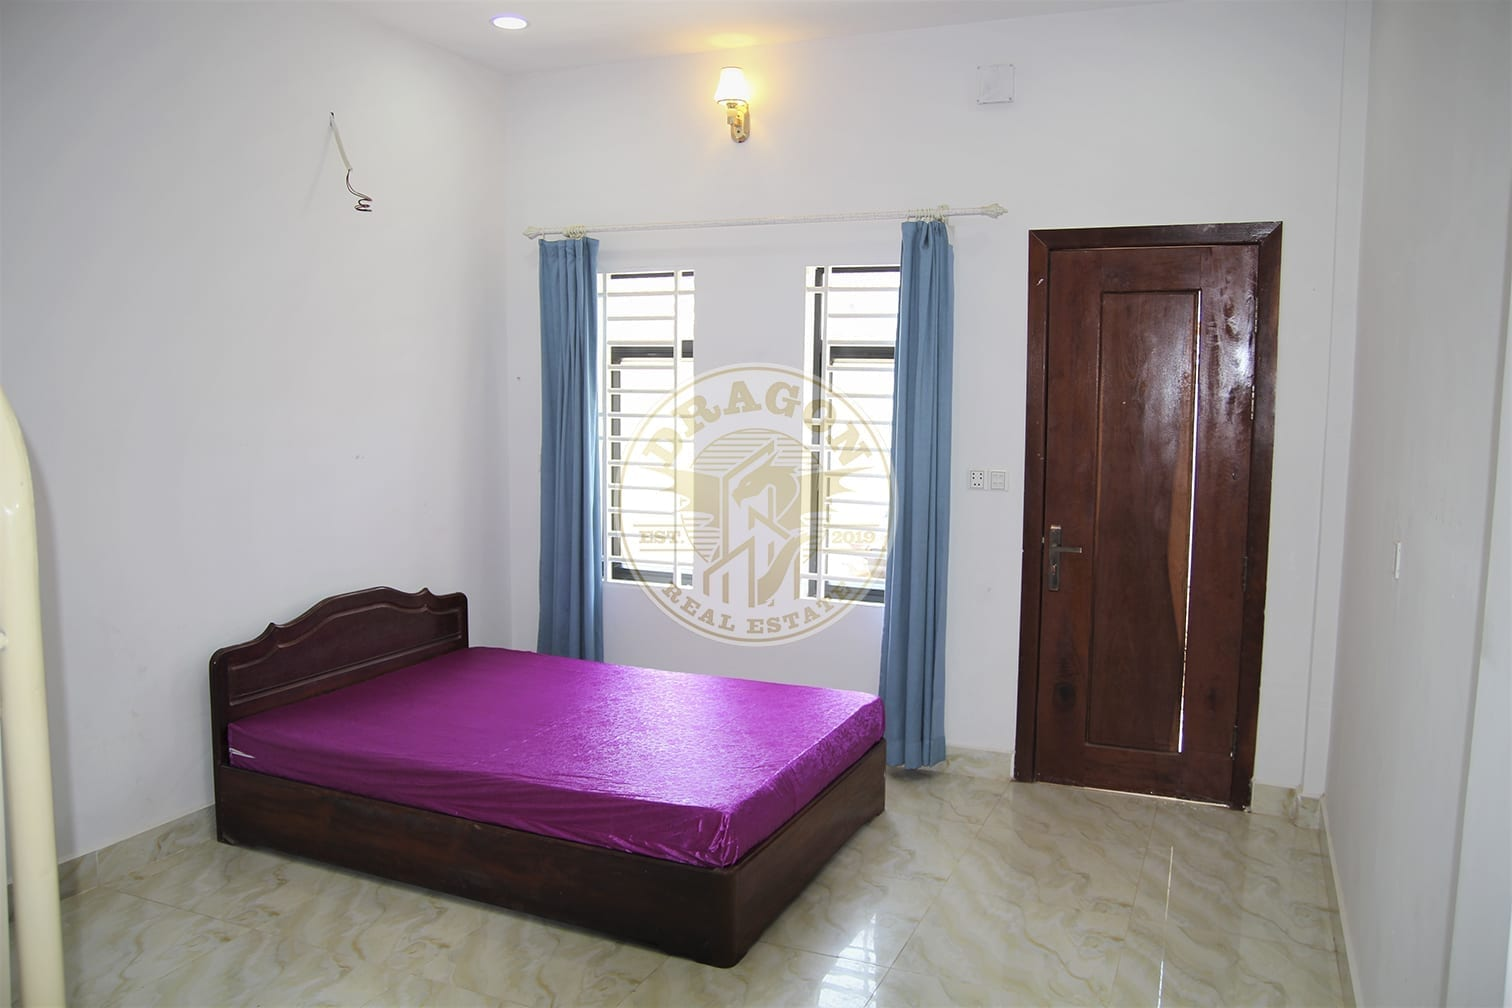 Affordable Studio for Rent. Sihanoukville Cambodia Property Sale